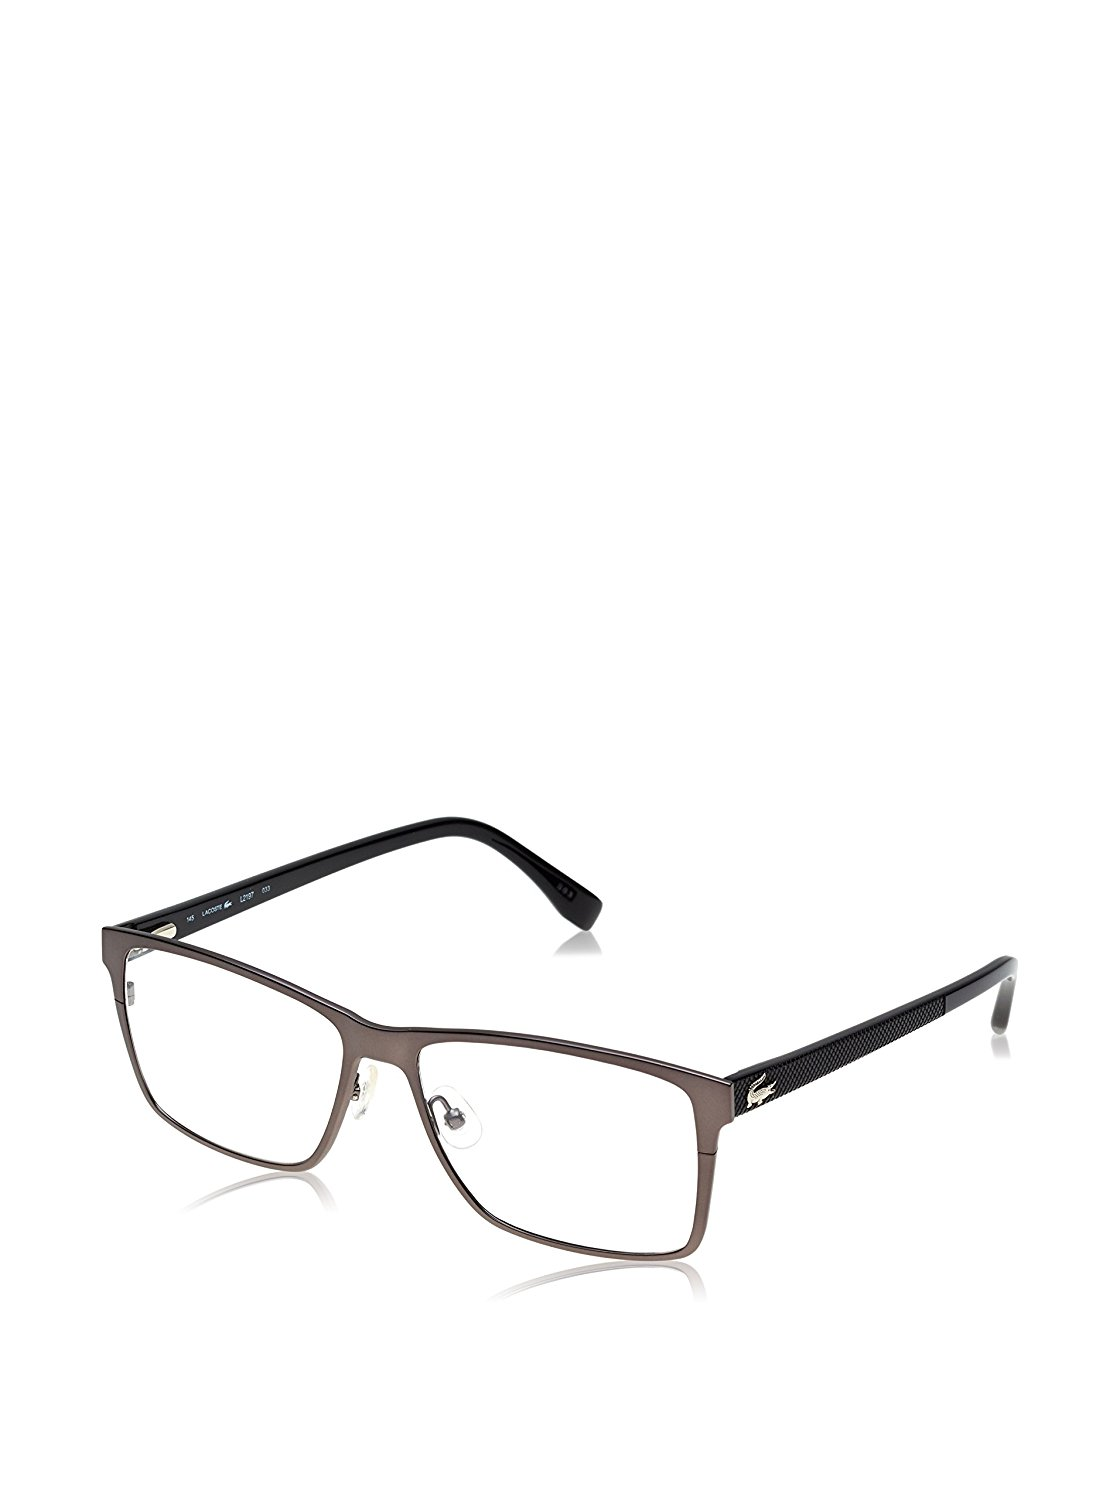 5ccbed9a1ed3 Get Quotations · Lacoste 2197 033 55mm Gunmetal Eyeglasses